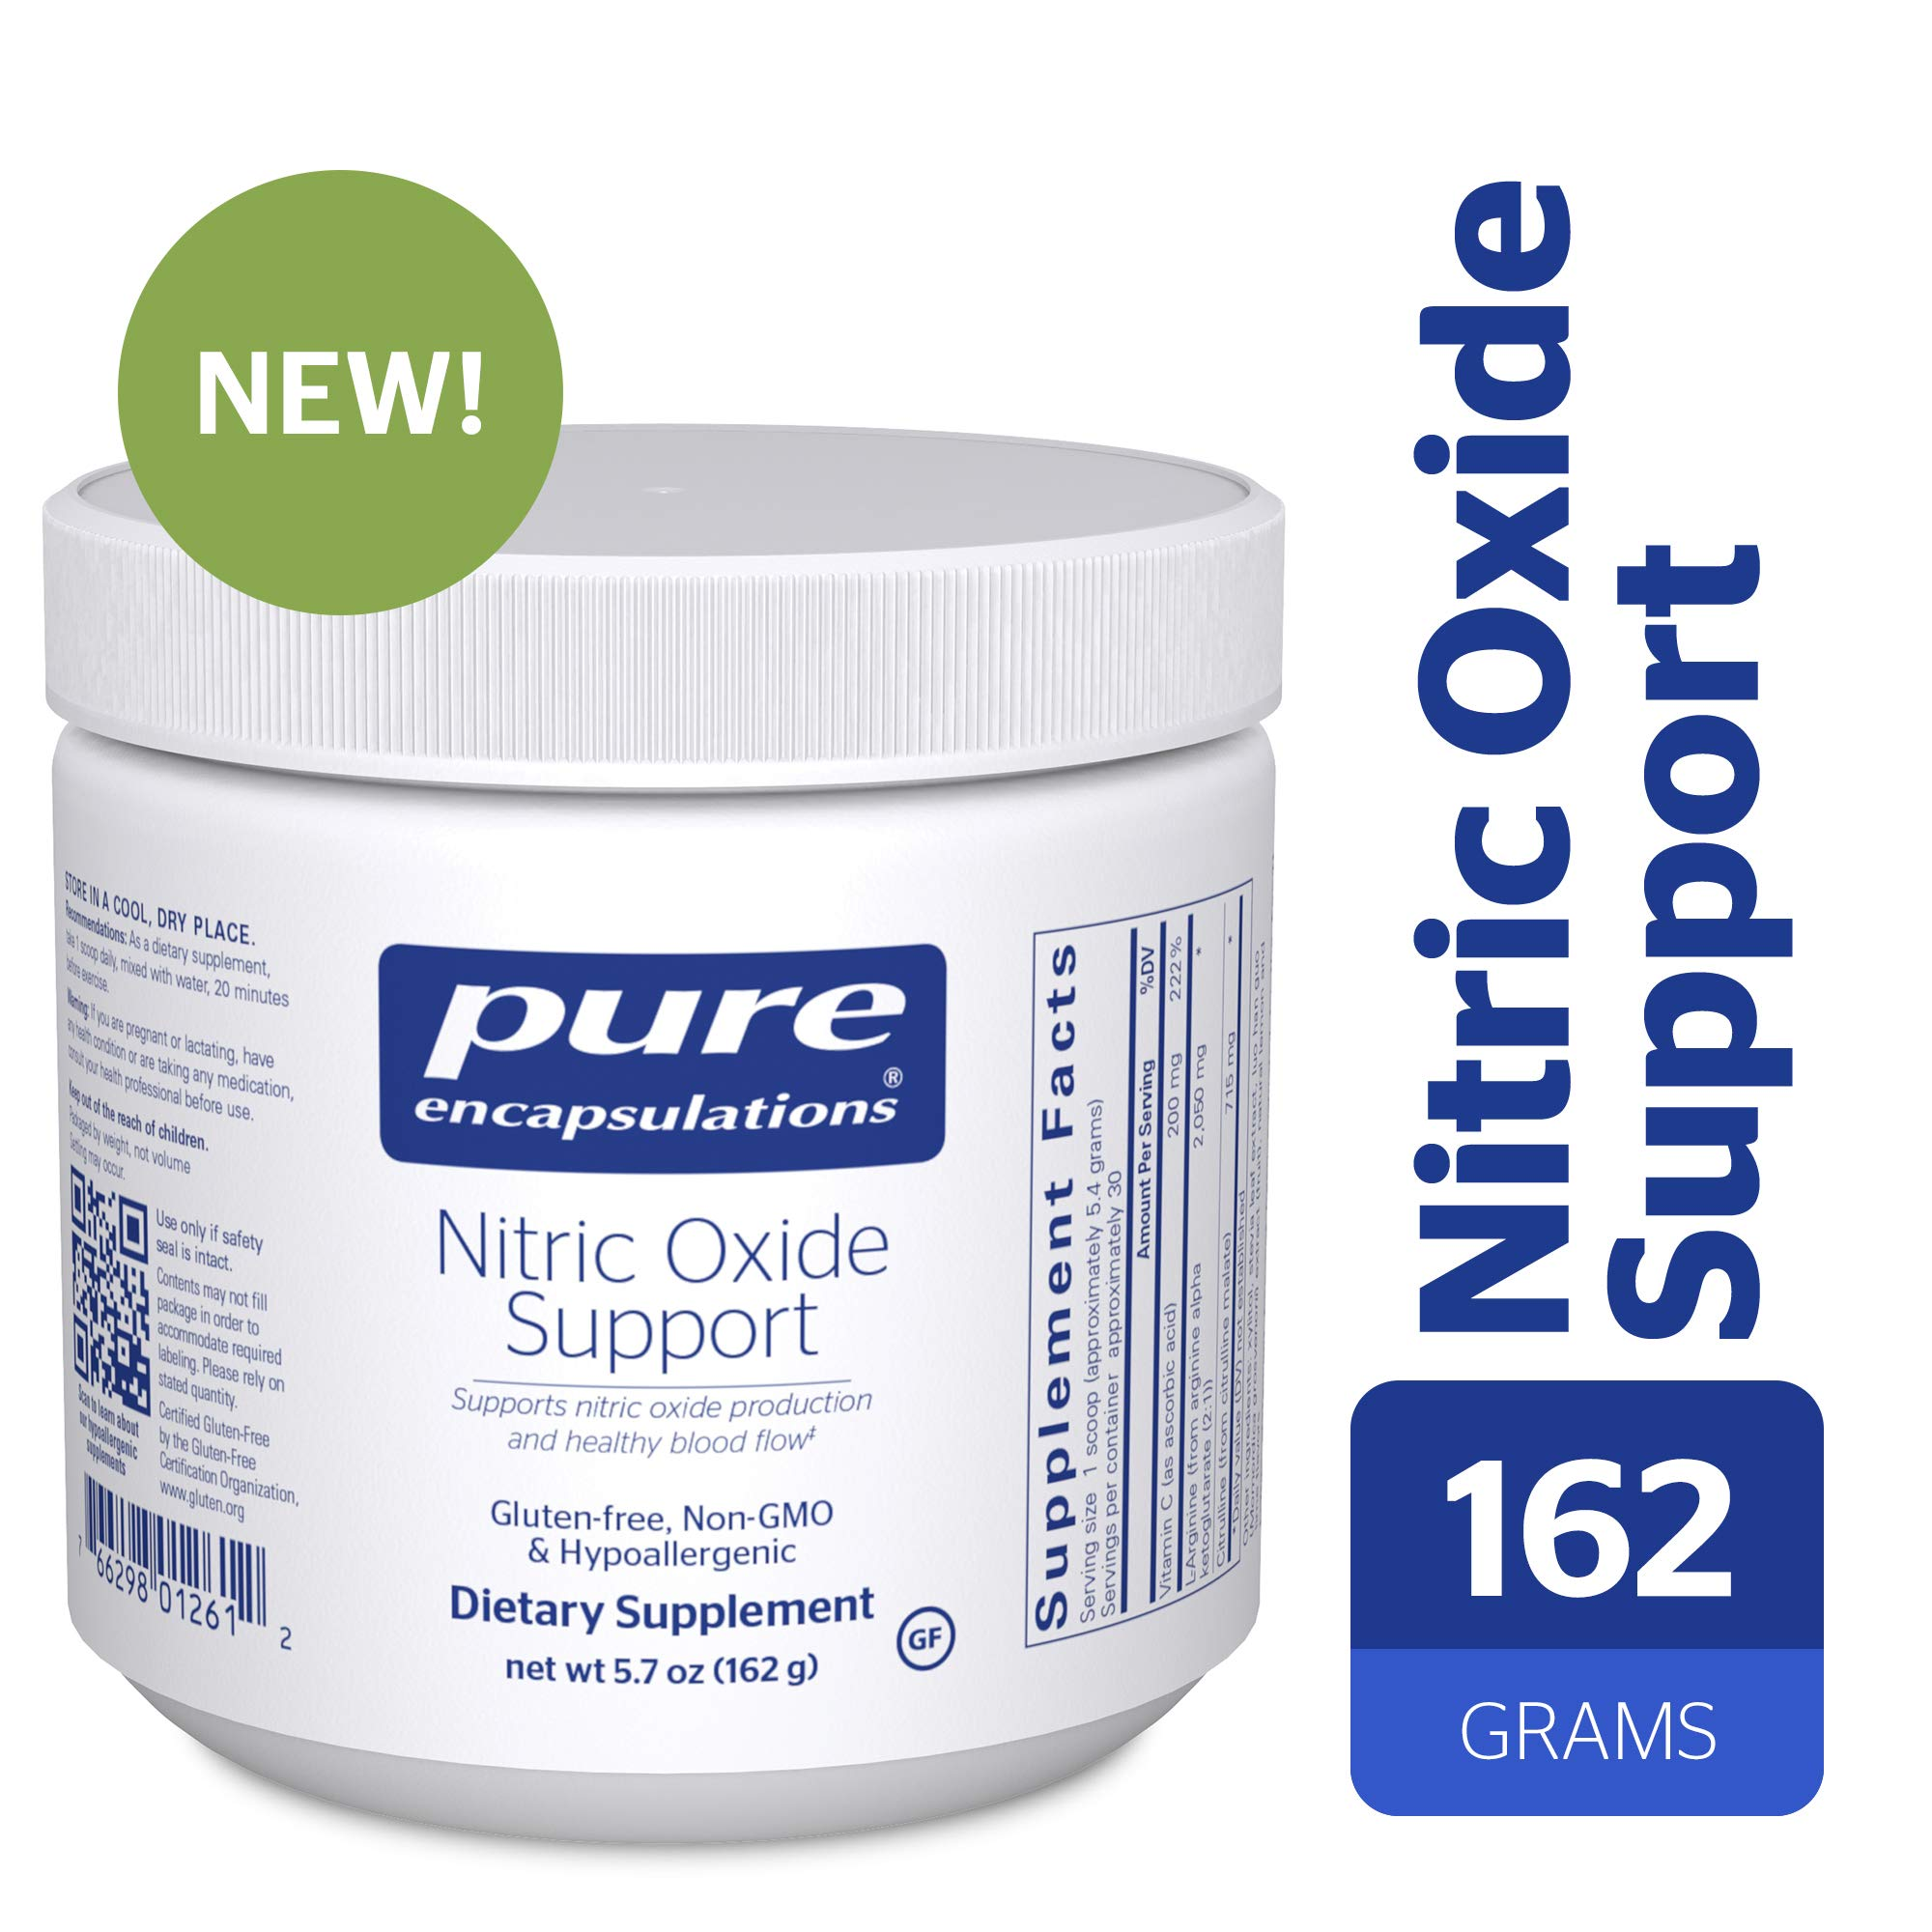 Pure Encapsulations - Nitric Oxide Support - Supports Healthy Oxygen Circulation and Promotes Energy Production Within Muscles - 162 Grams by Pure Encapsulations